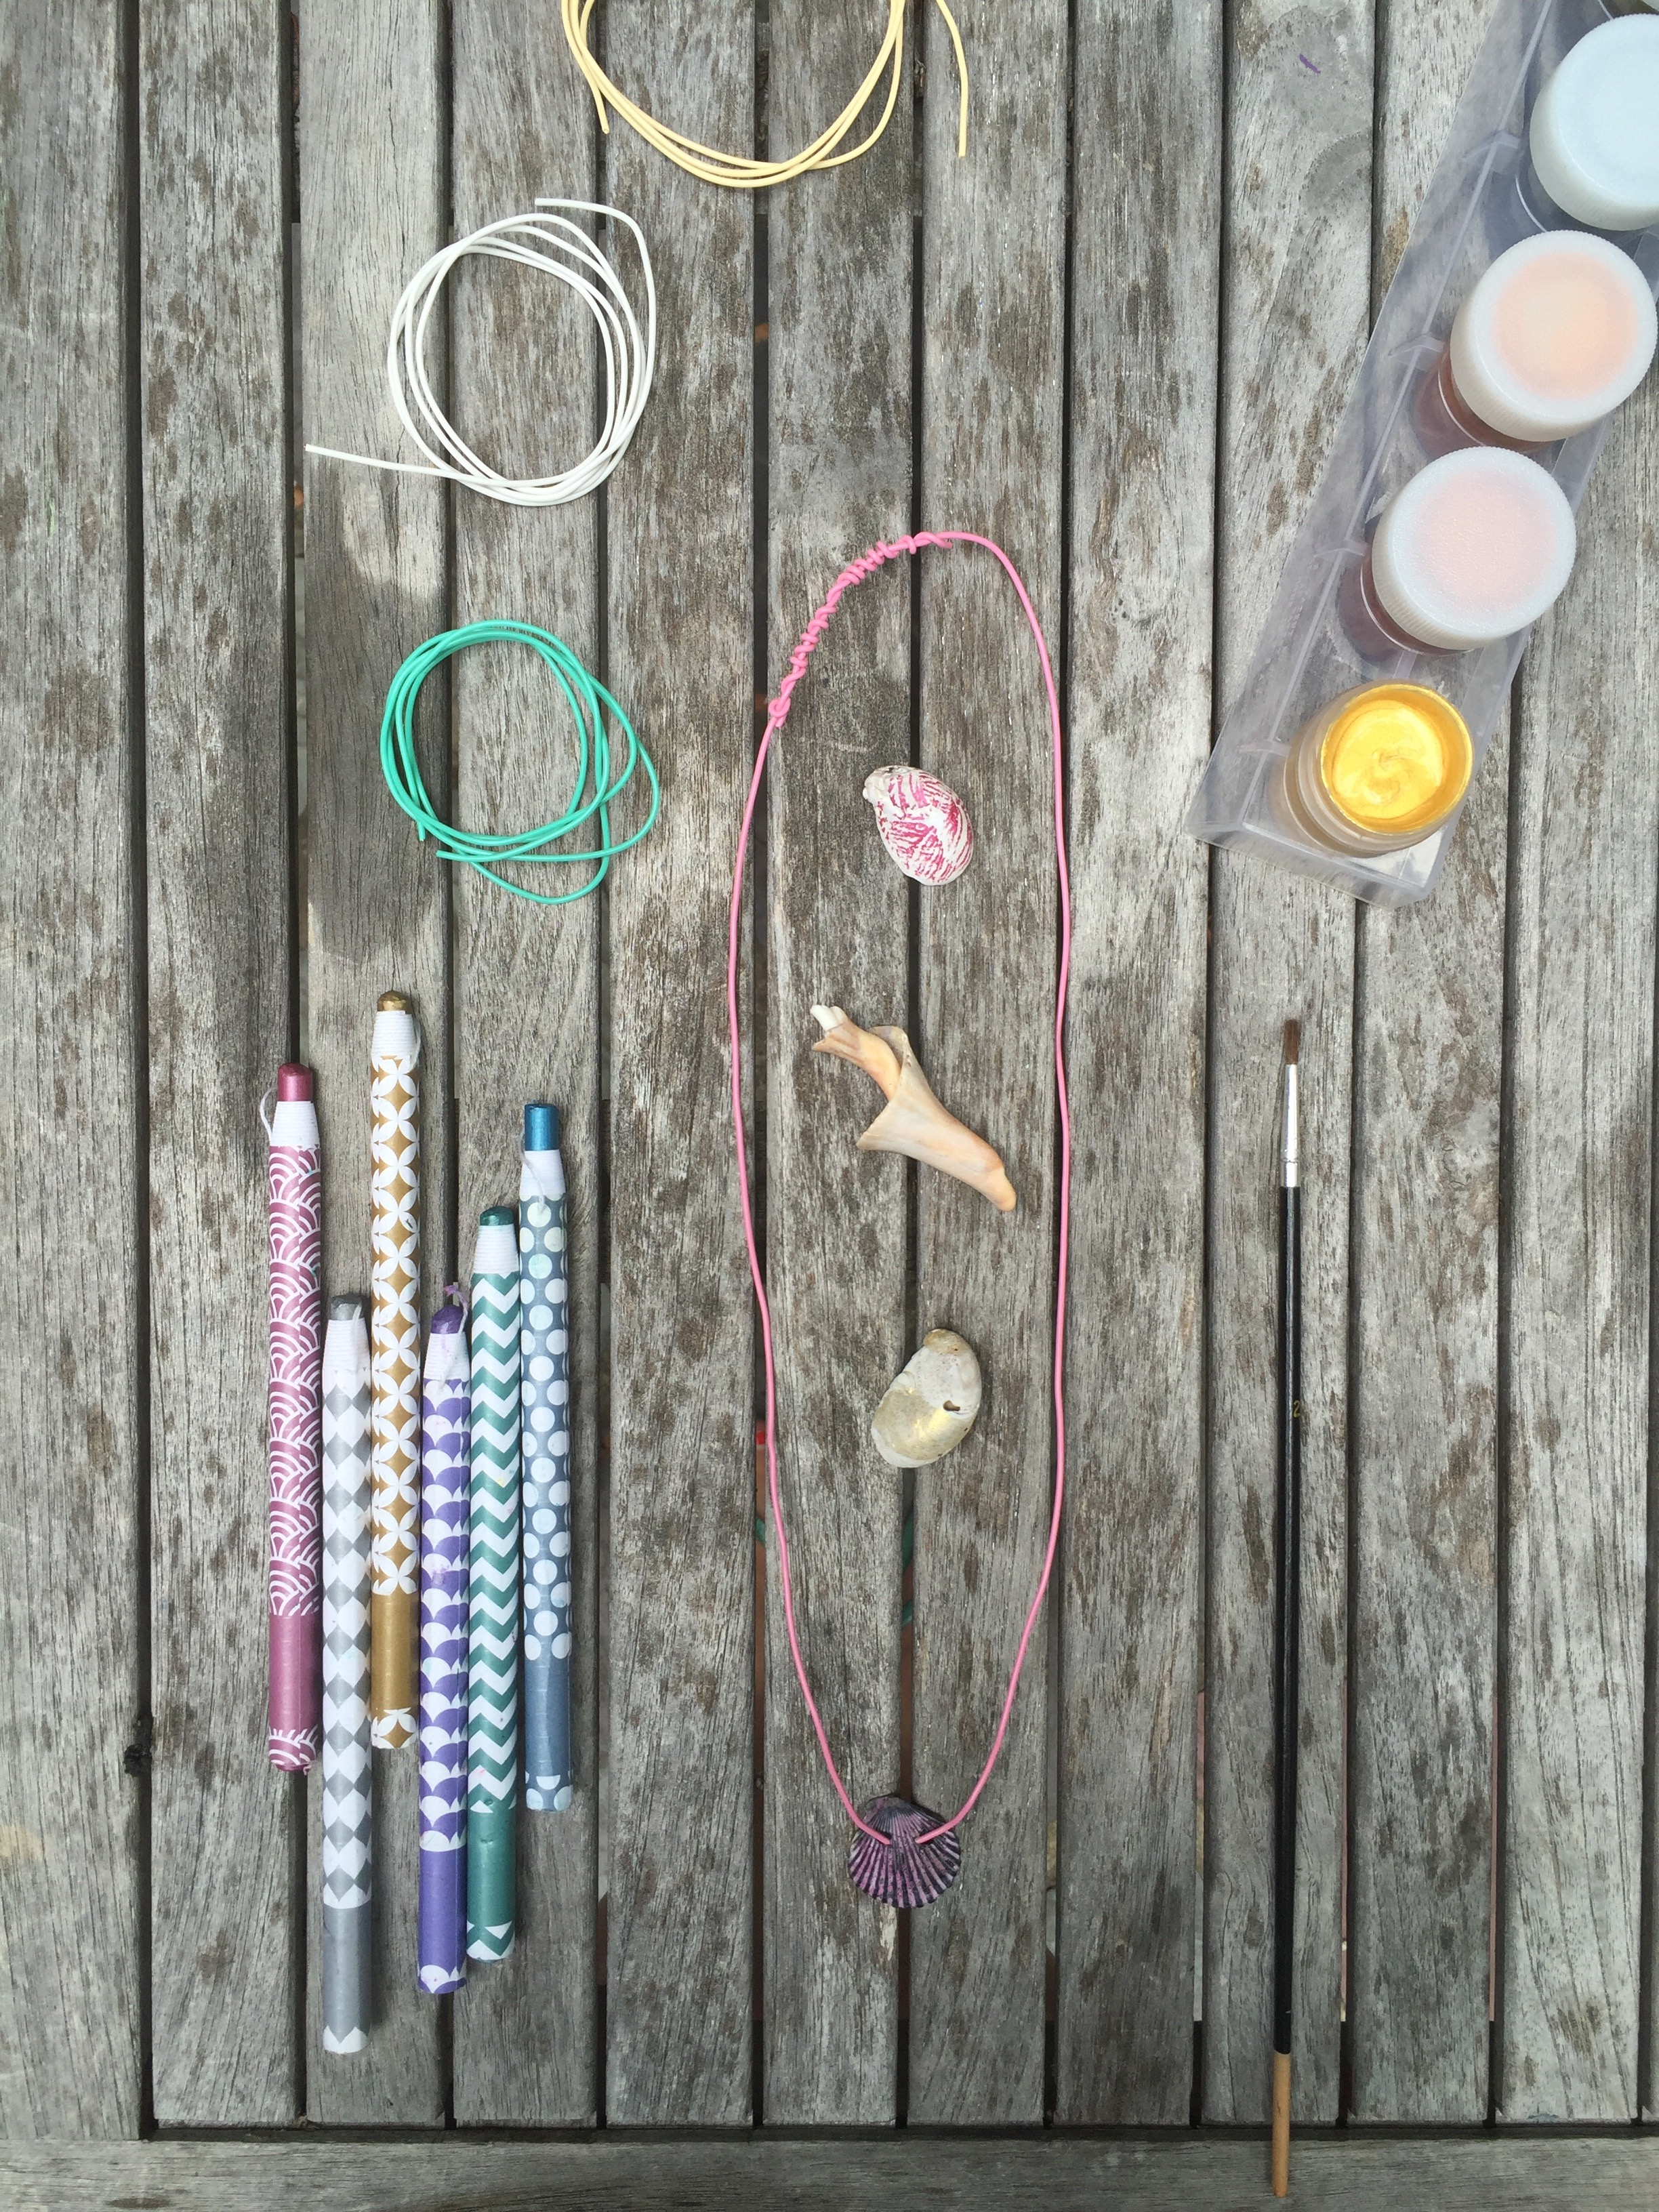 DIY Seashell Necklaces by Rebecca Pitts